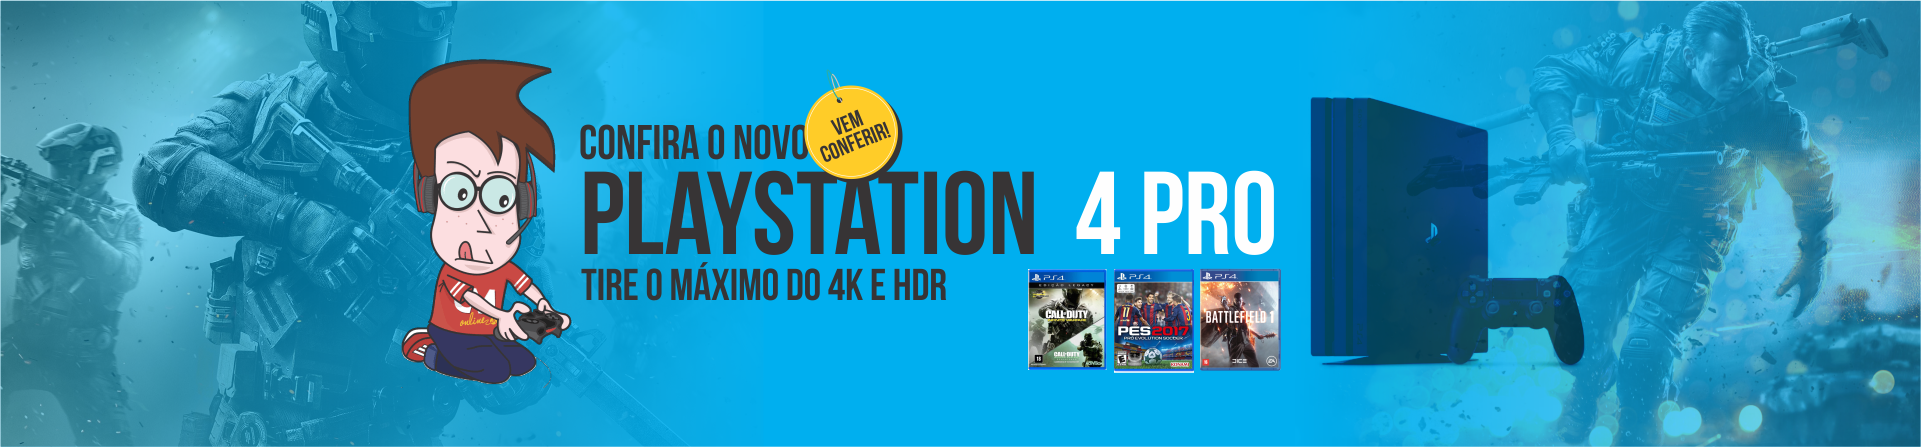 BANNER PLAYSTATION